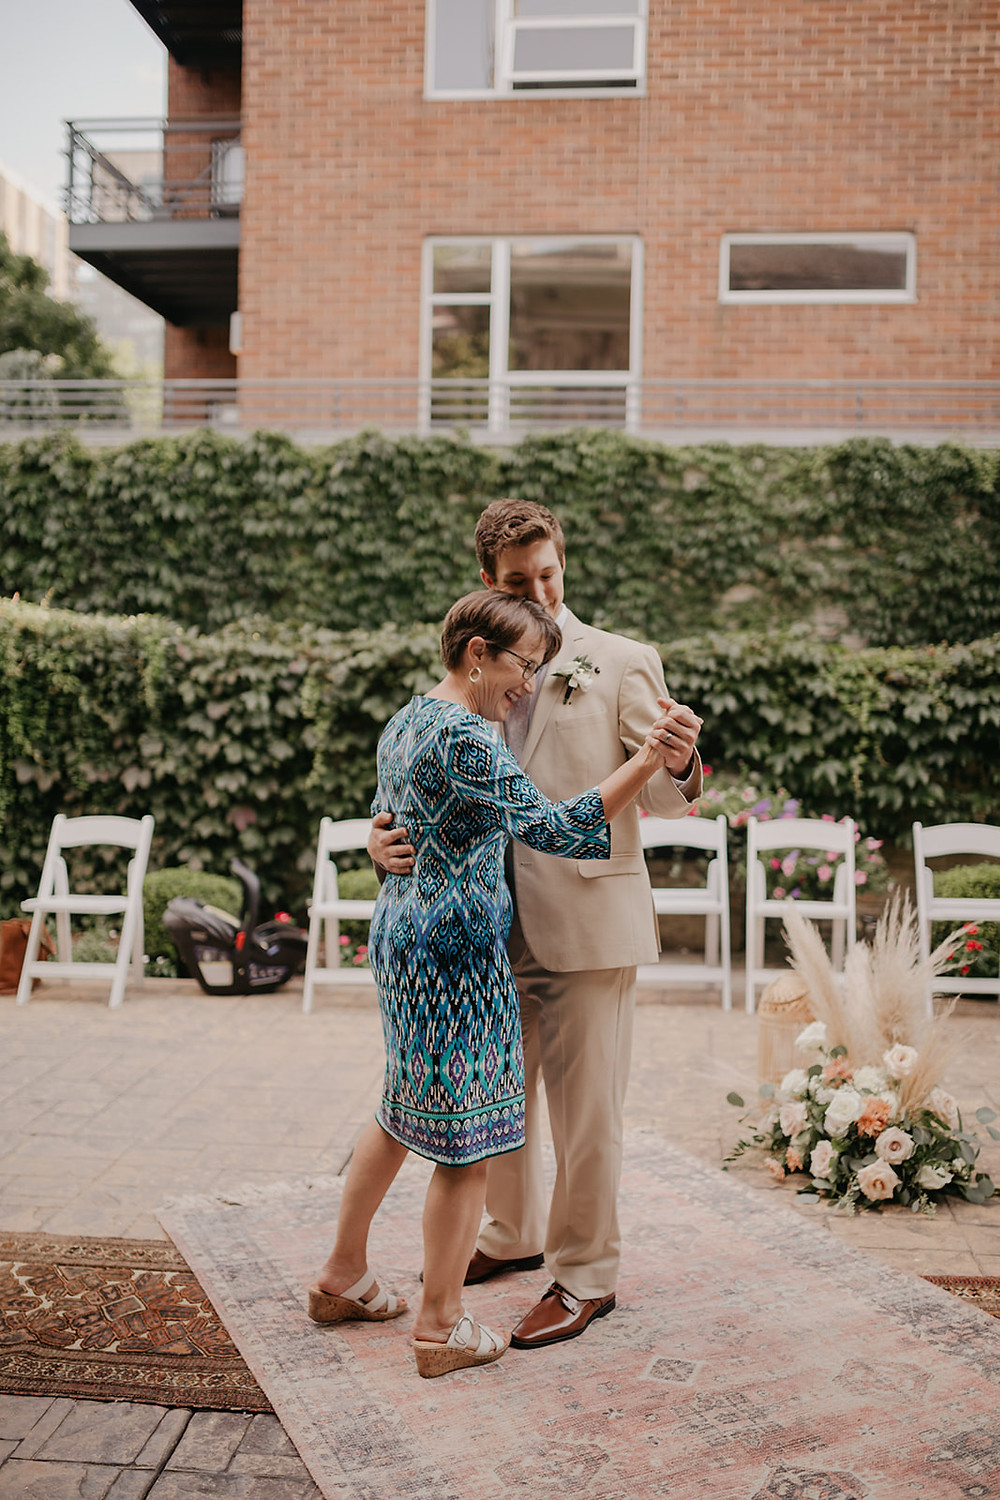 Mother and son first dance is about special memories and special love.